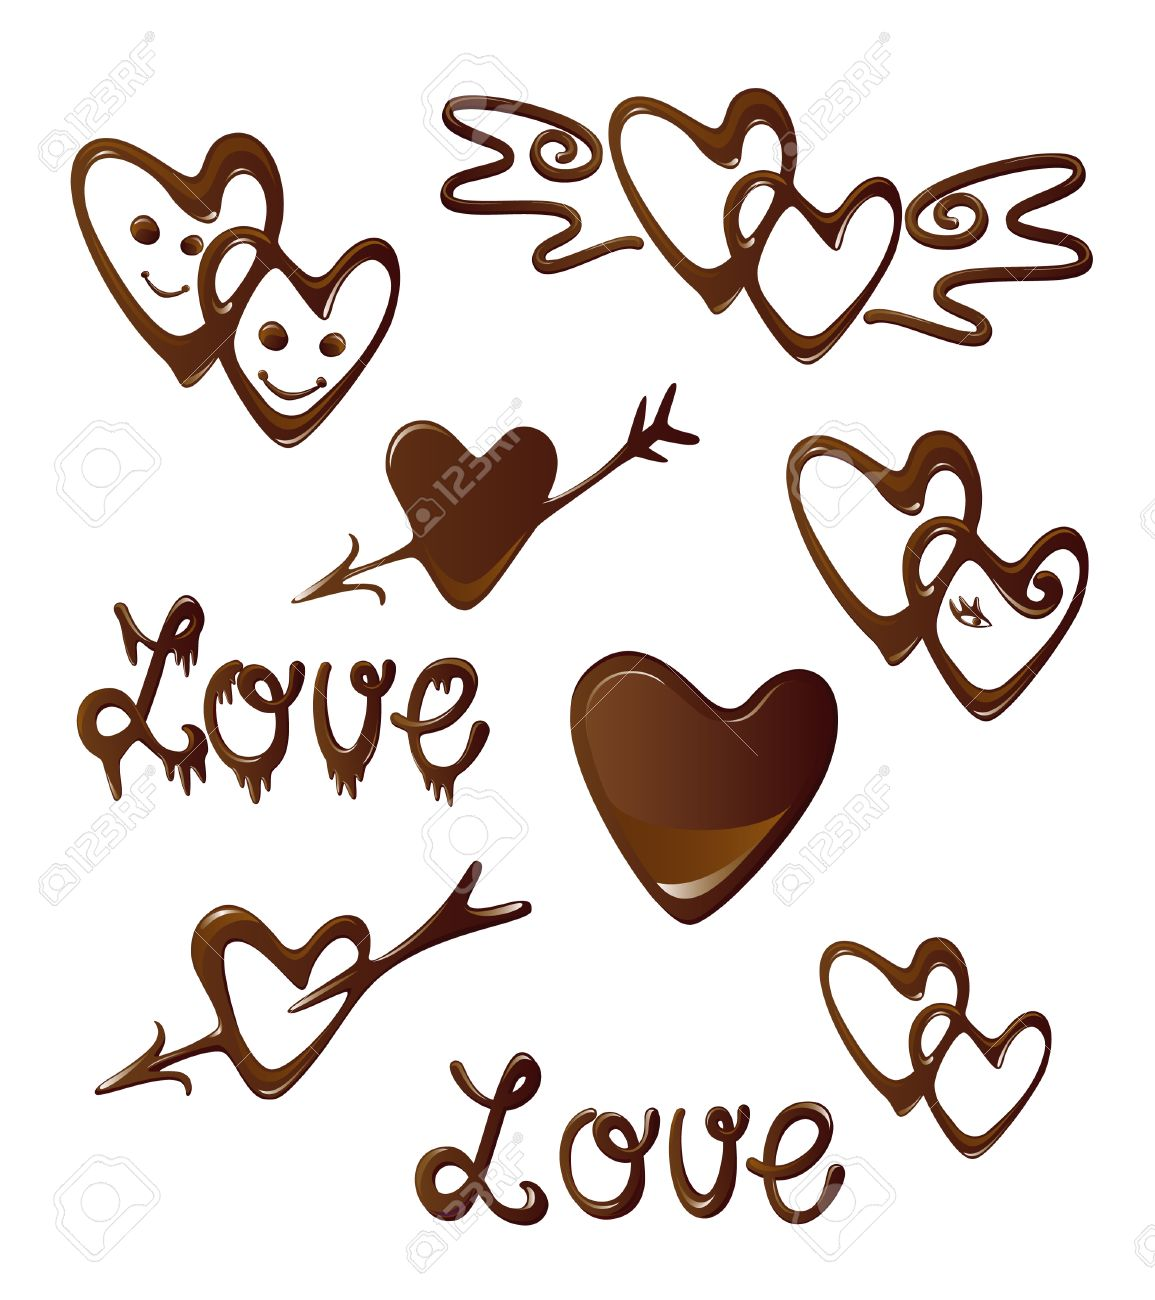 Chocolate Heart And Love Symbols Royalty Free Cliparts Vectors And